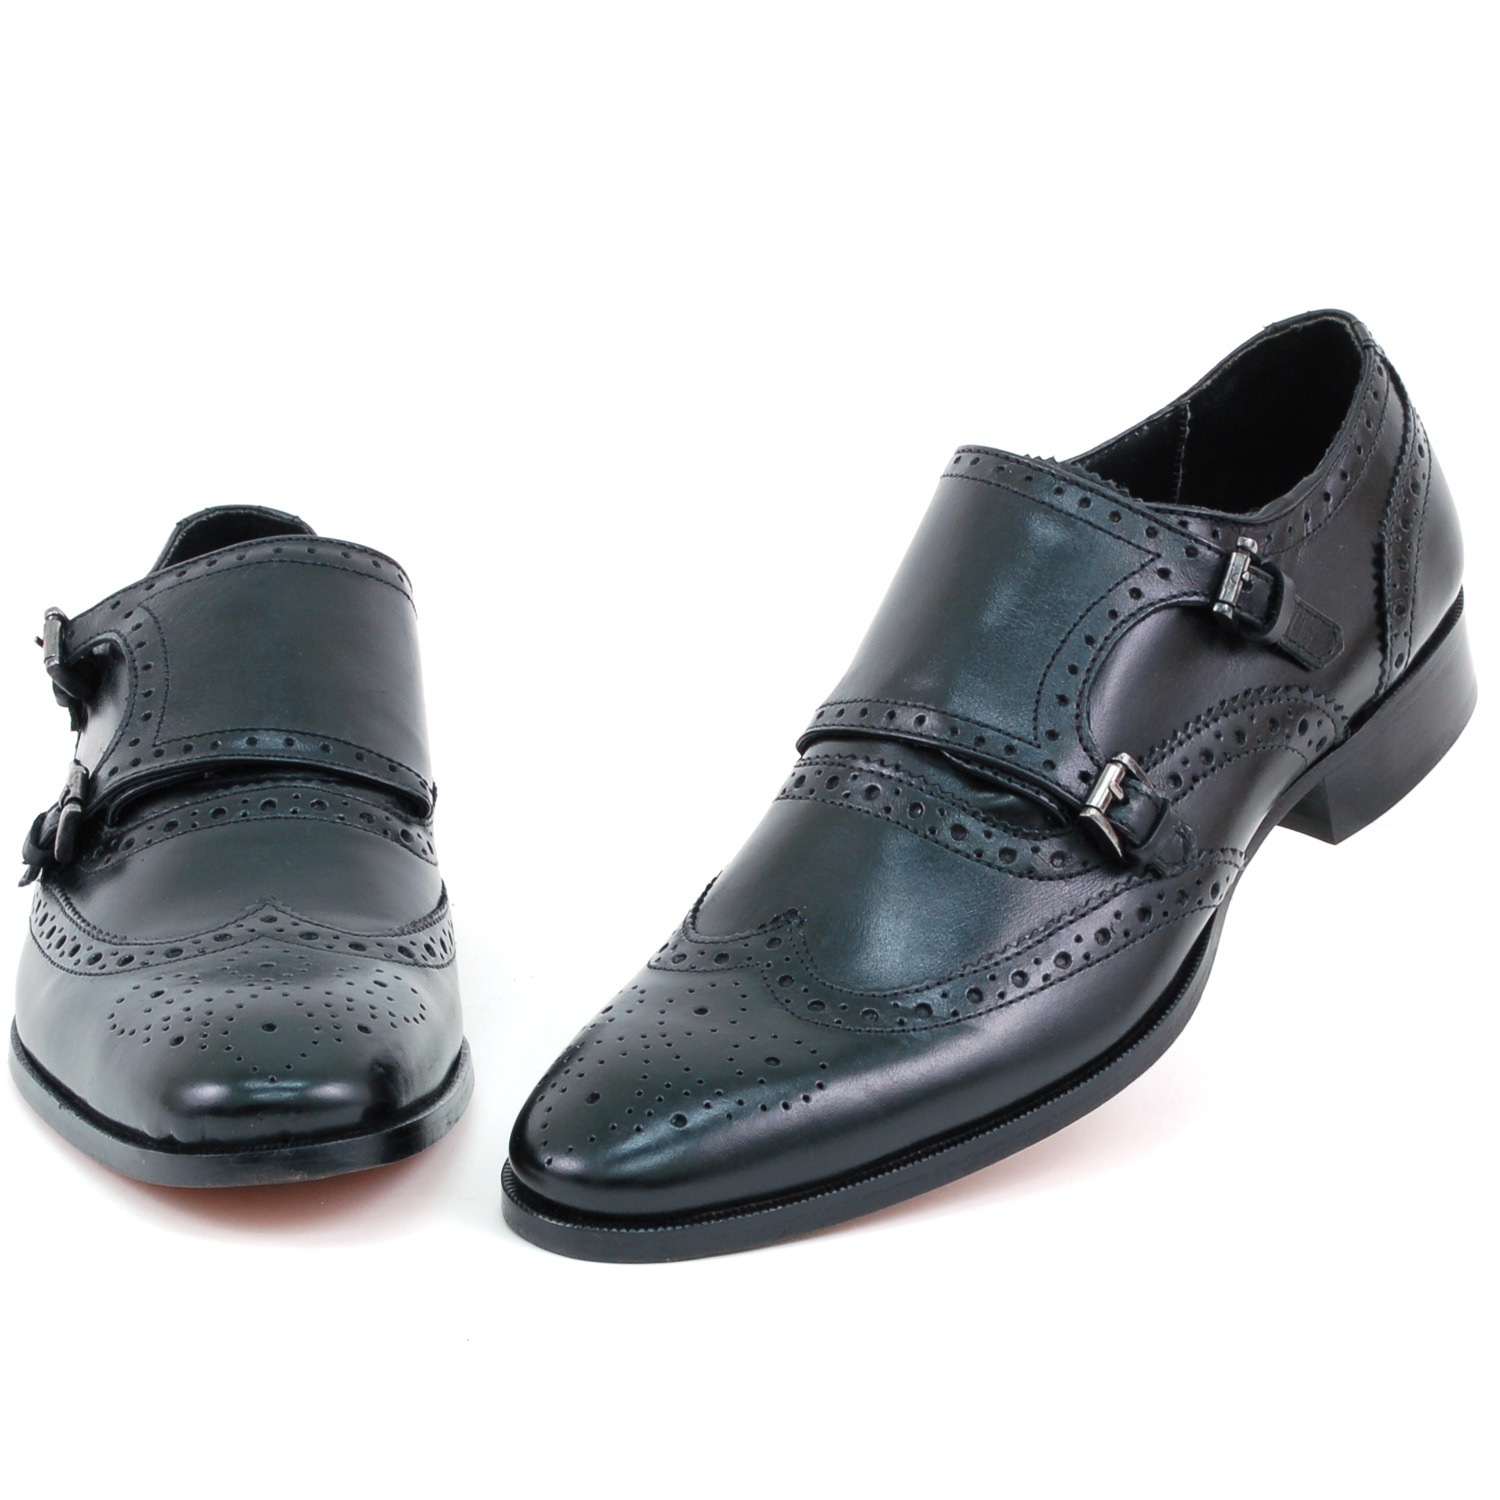 Are Monk Strap Shoes Slip On